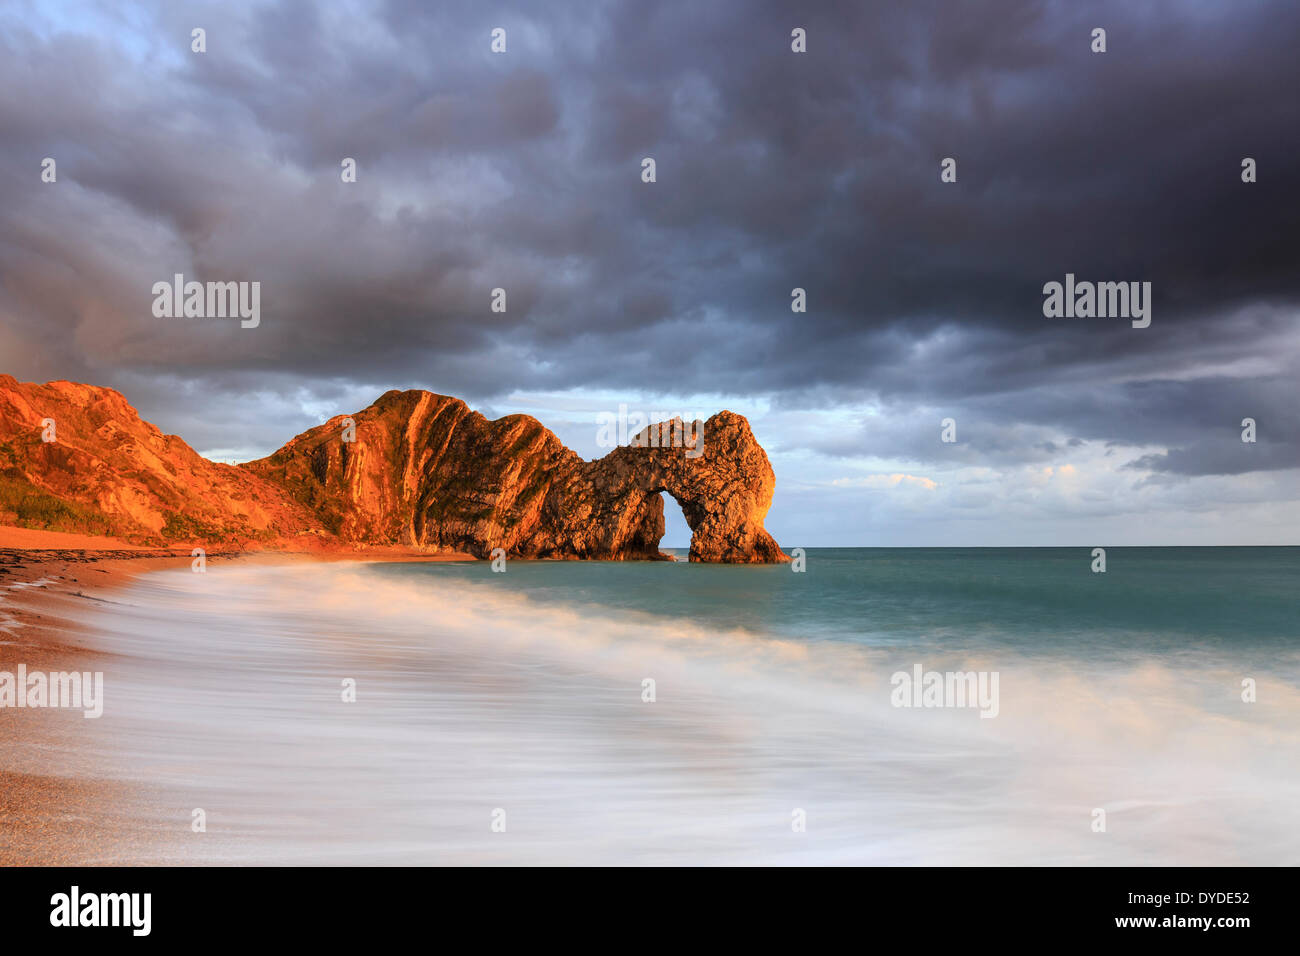 A stormy sunset at Durdle Door in Dorset. - Stock Image